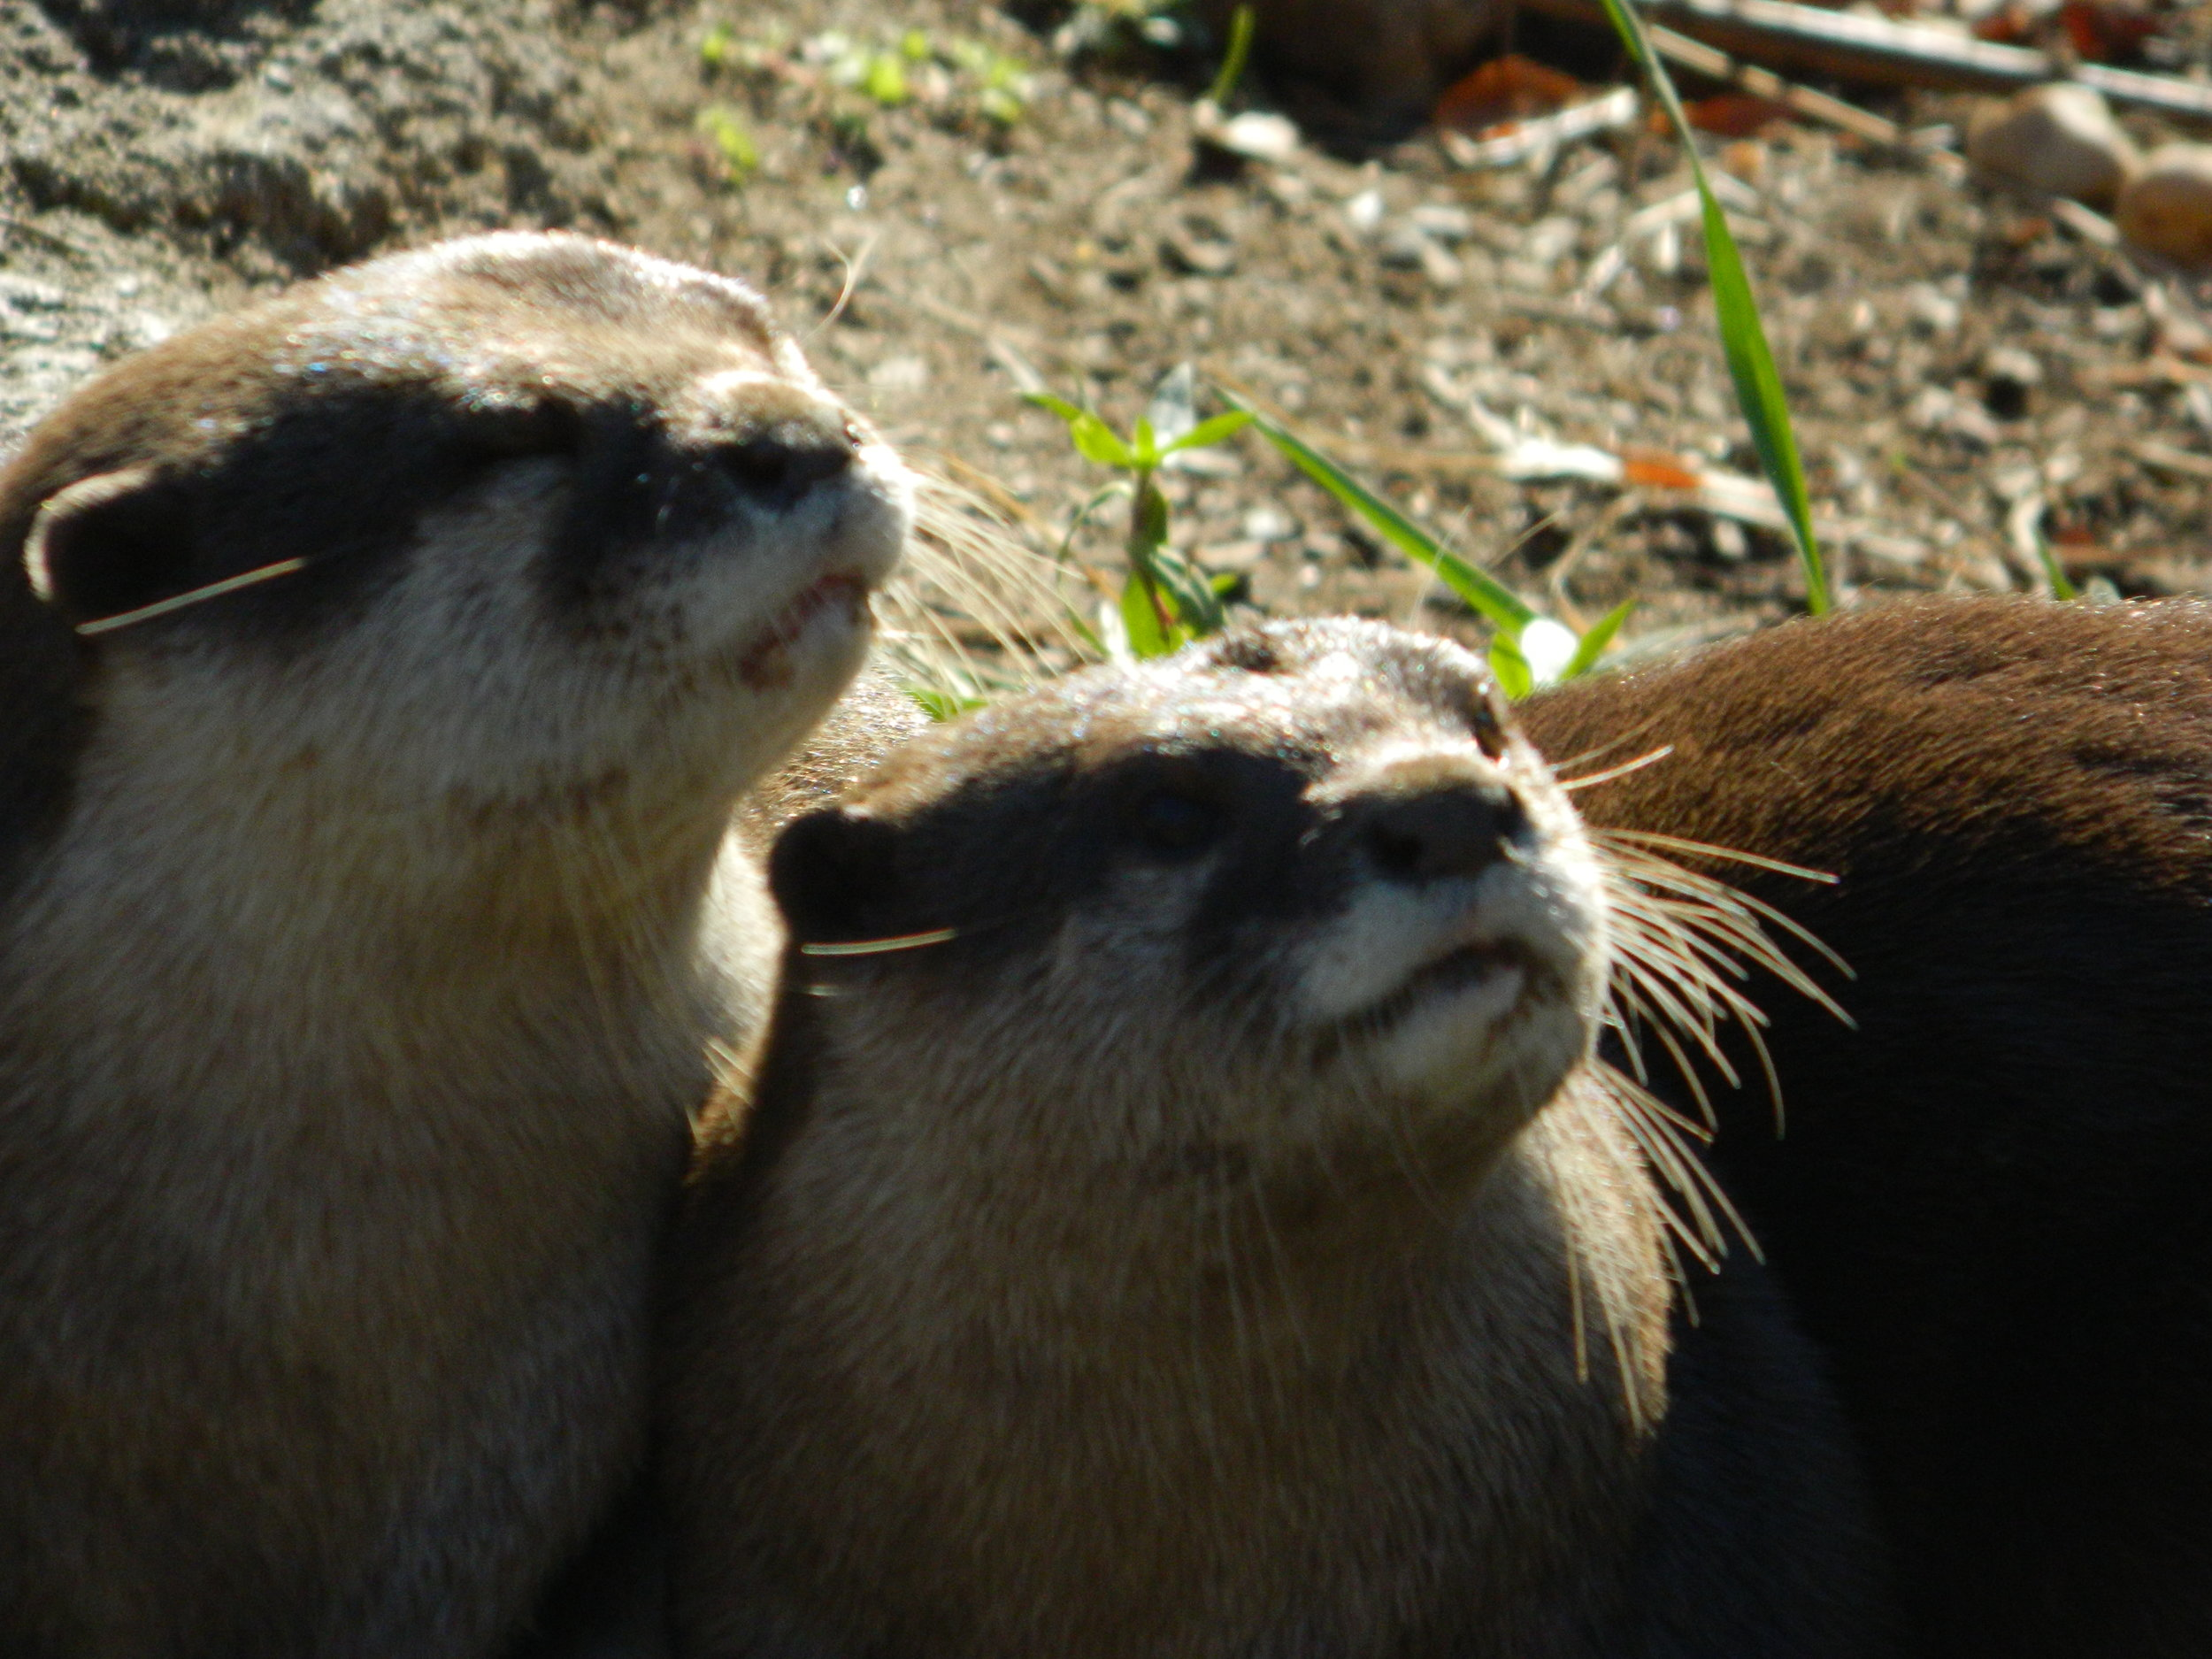 Something Has Caught Otters' Attention